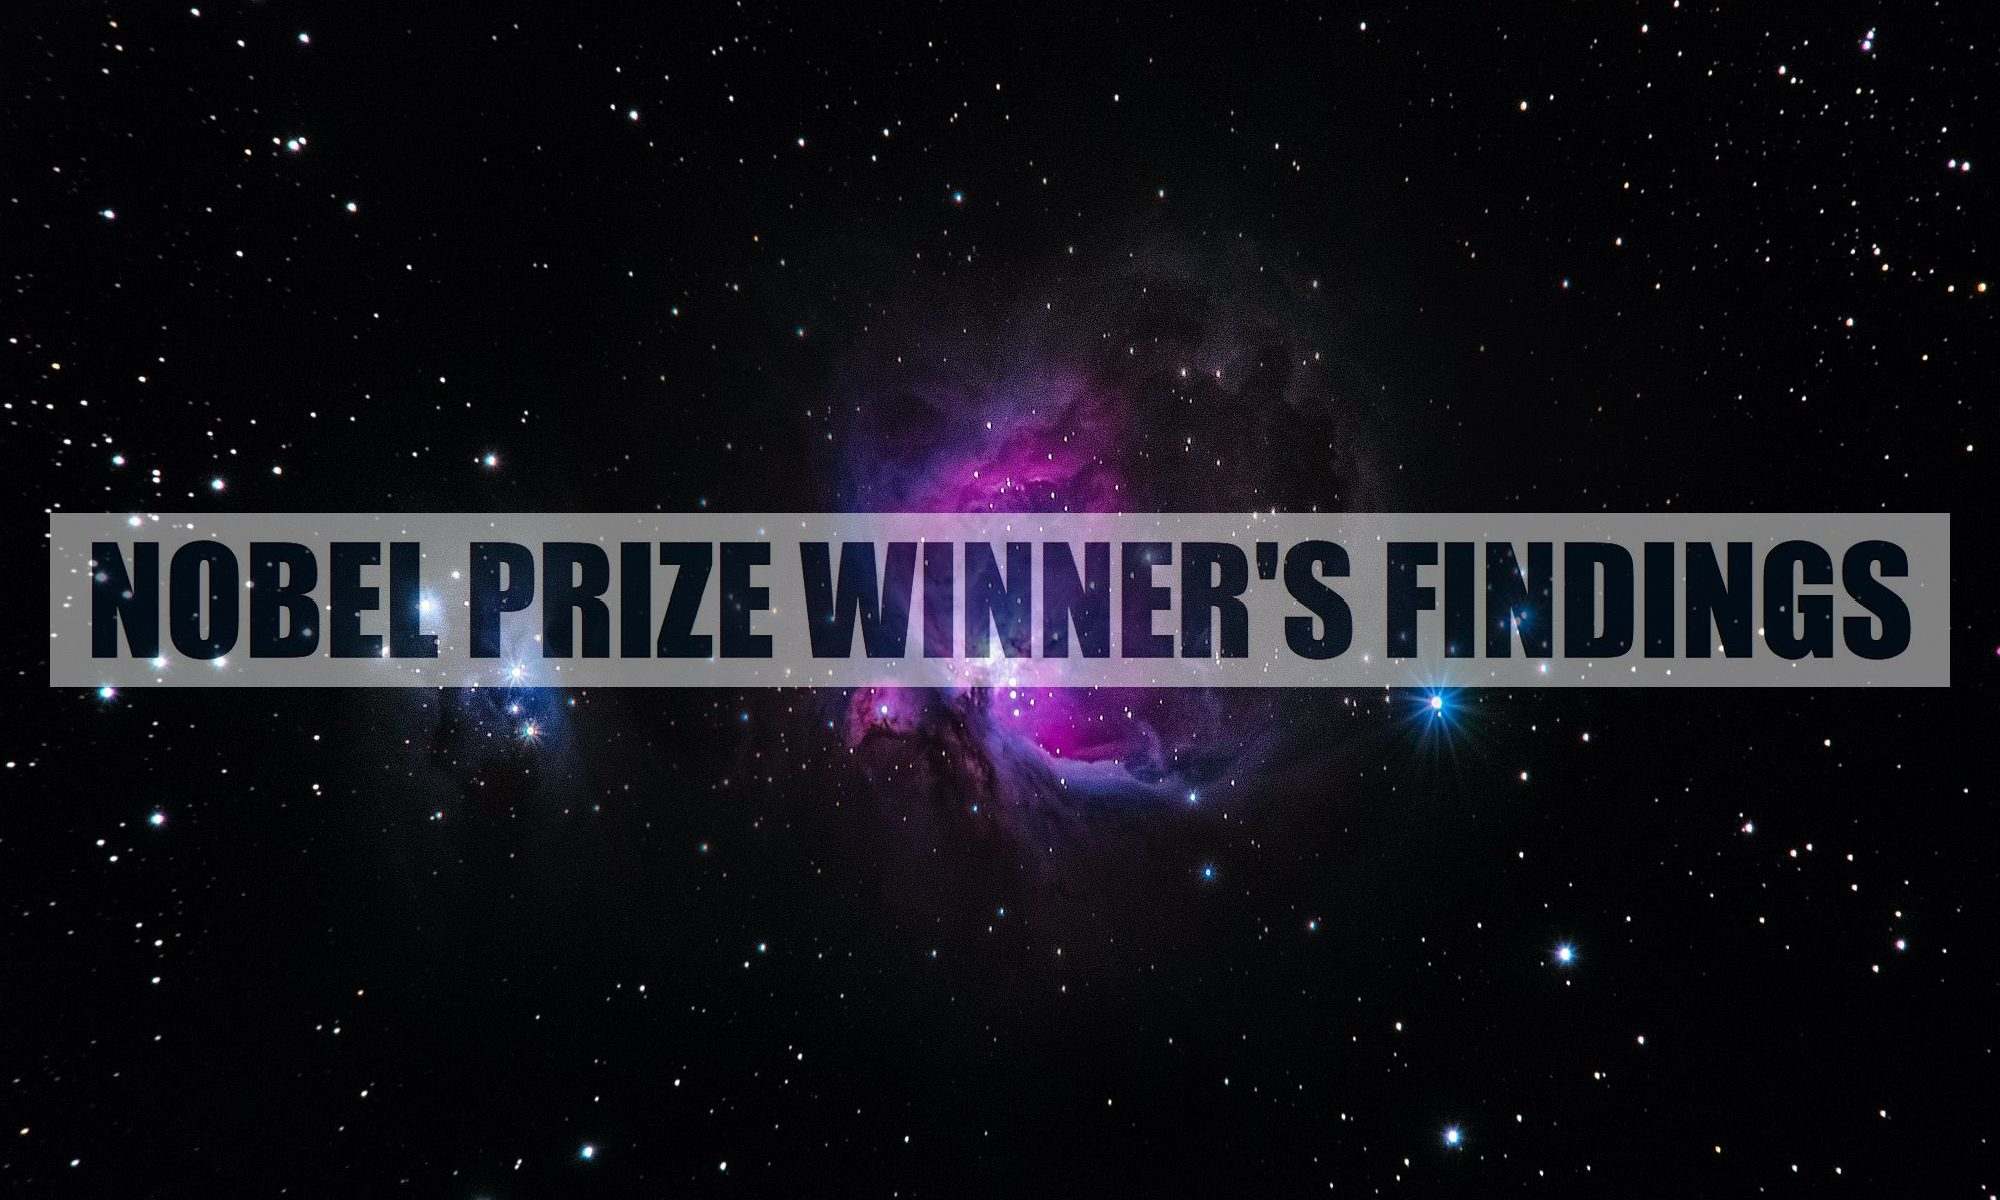 NOBEL-PRIZE-WINNERS-FINDINGS-Proof-Your-Thoughts-Create-Your-Reality-Z-2000